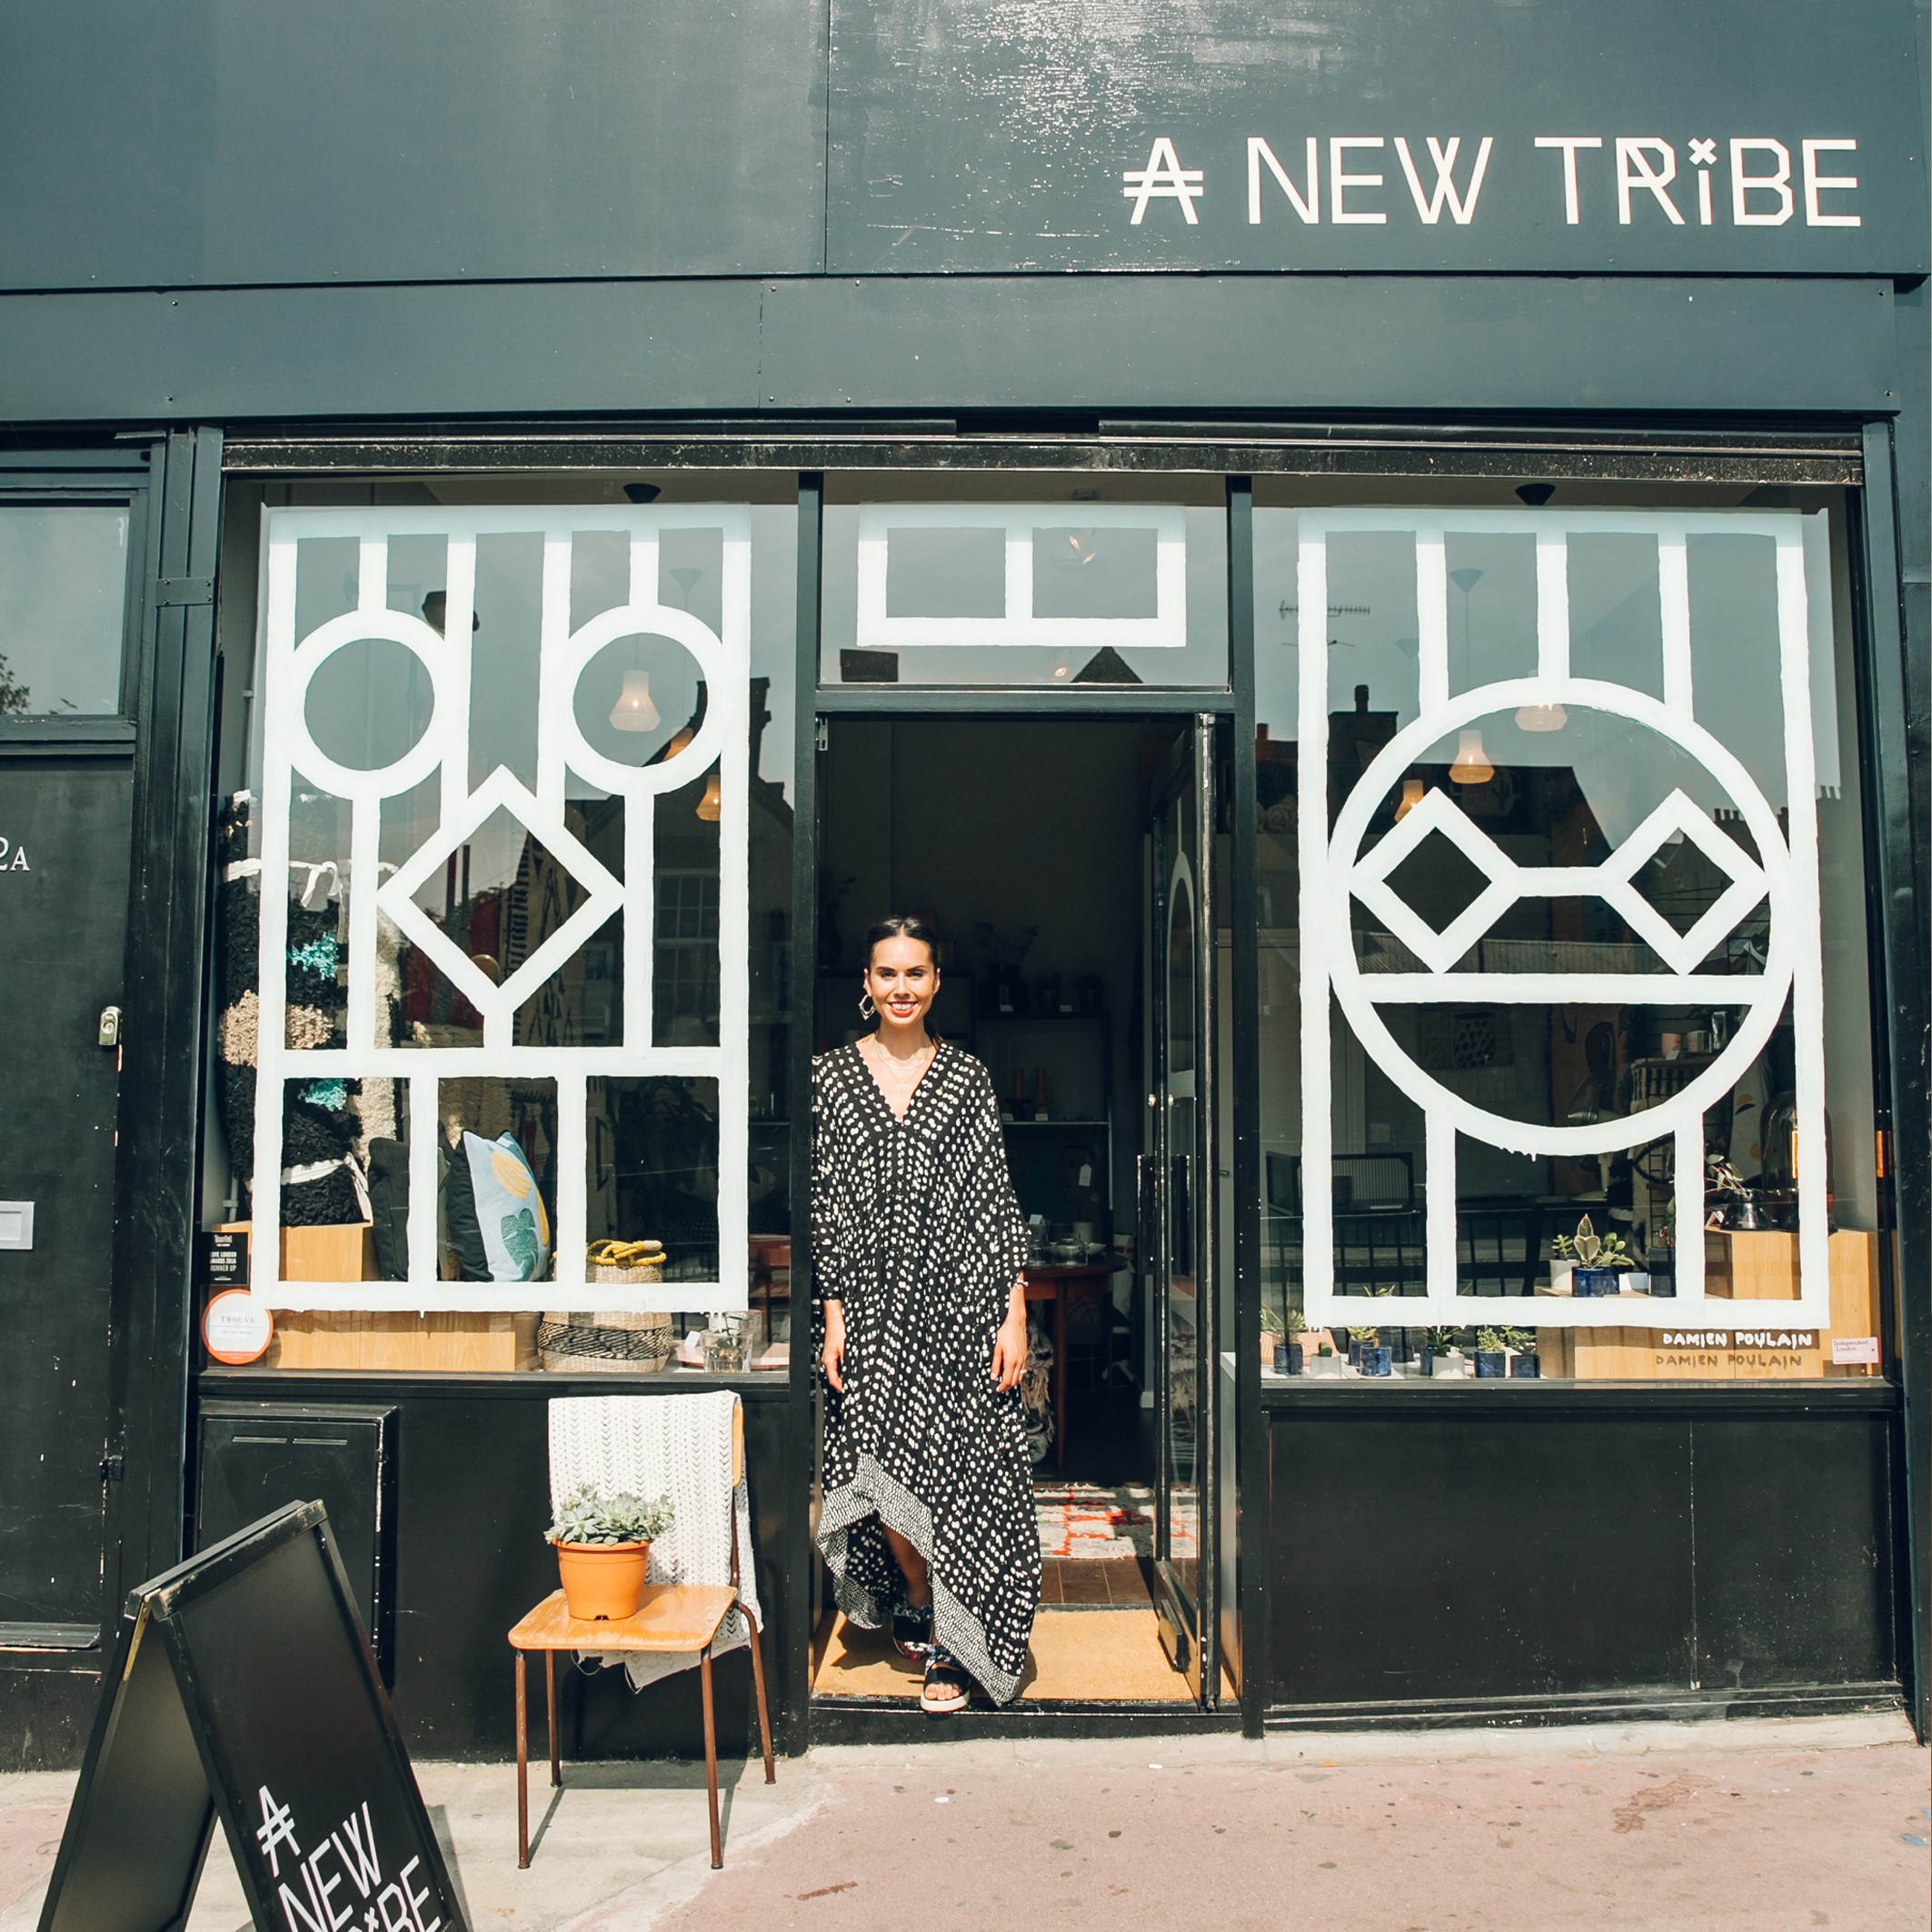 A NEW TRIBE CHATSWORTH ROAD PICTURE BY TROUVA.jpg